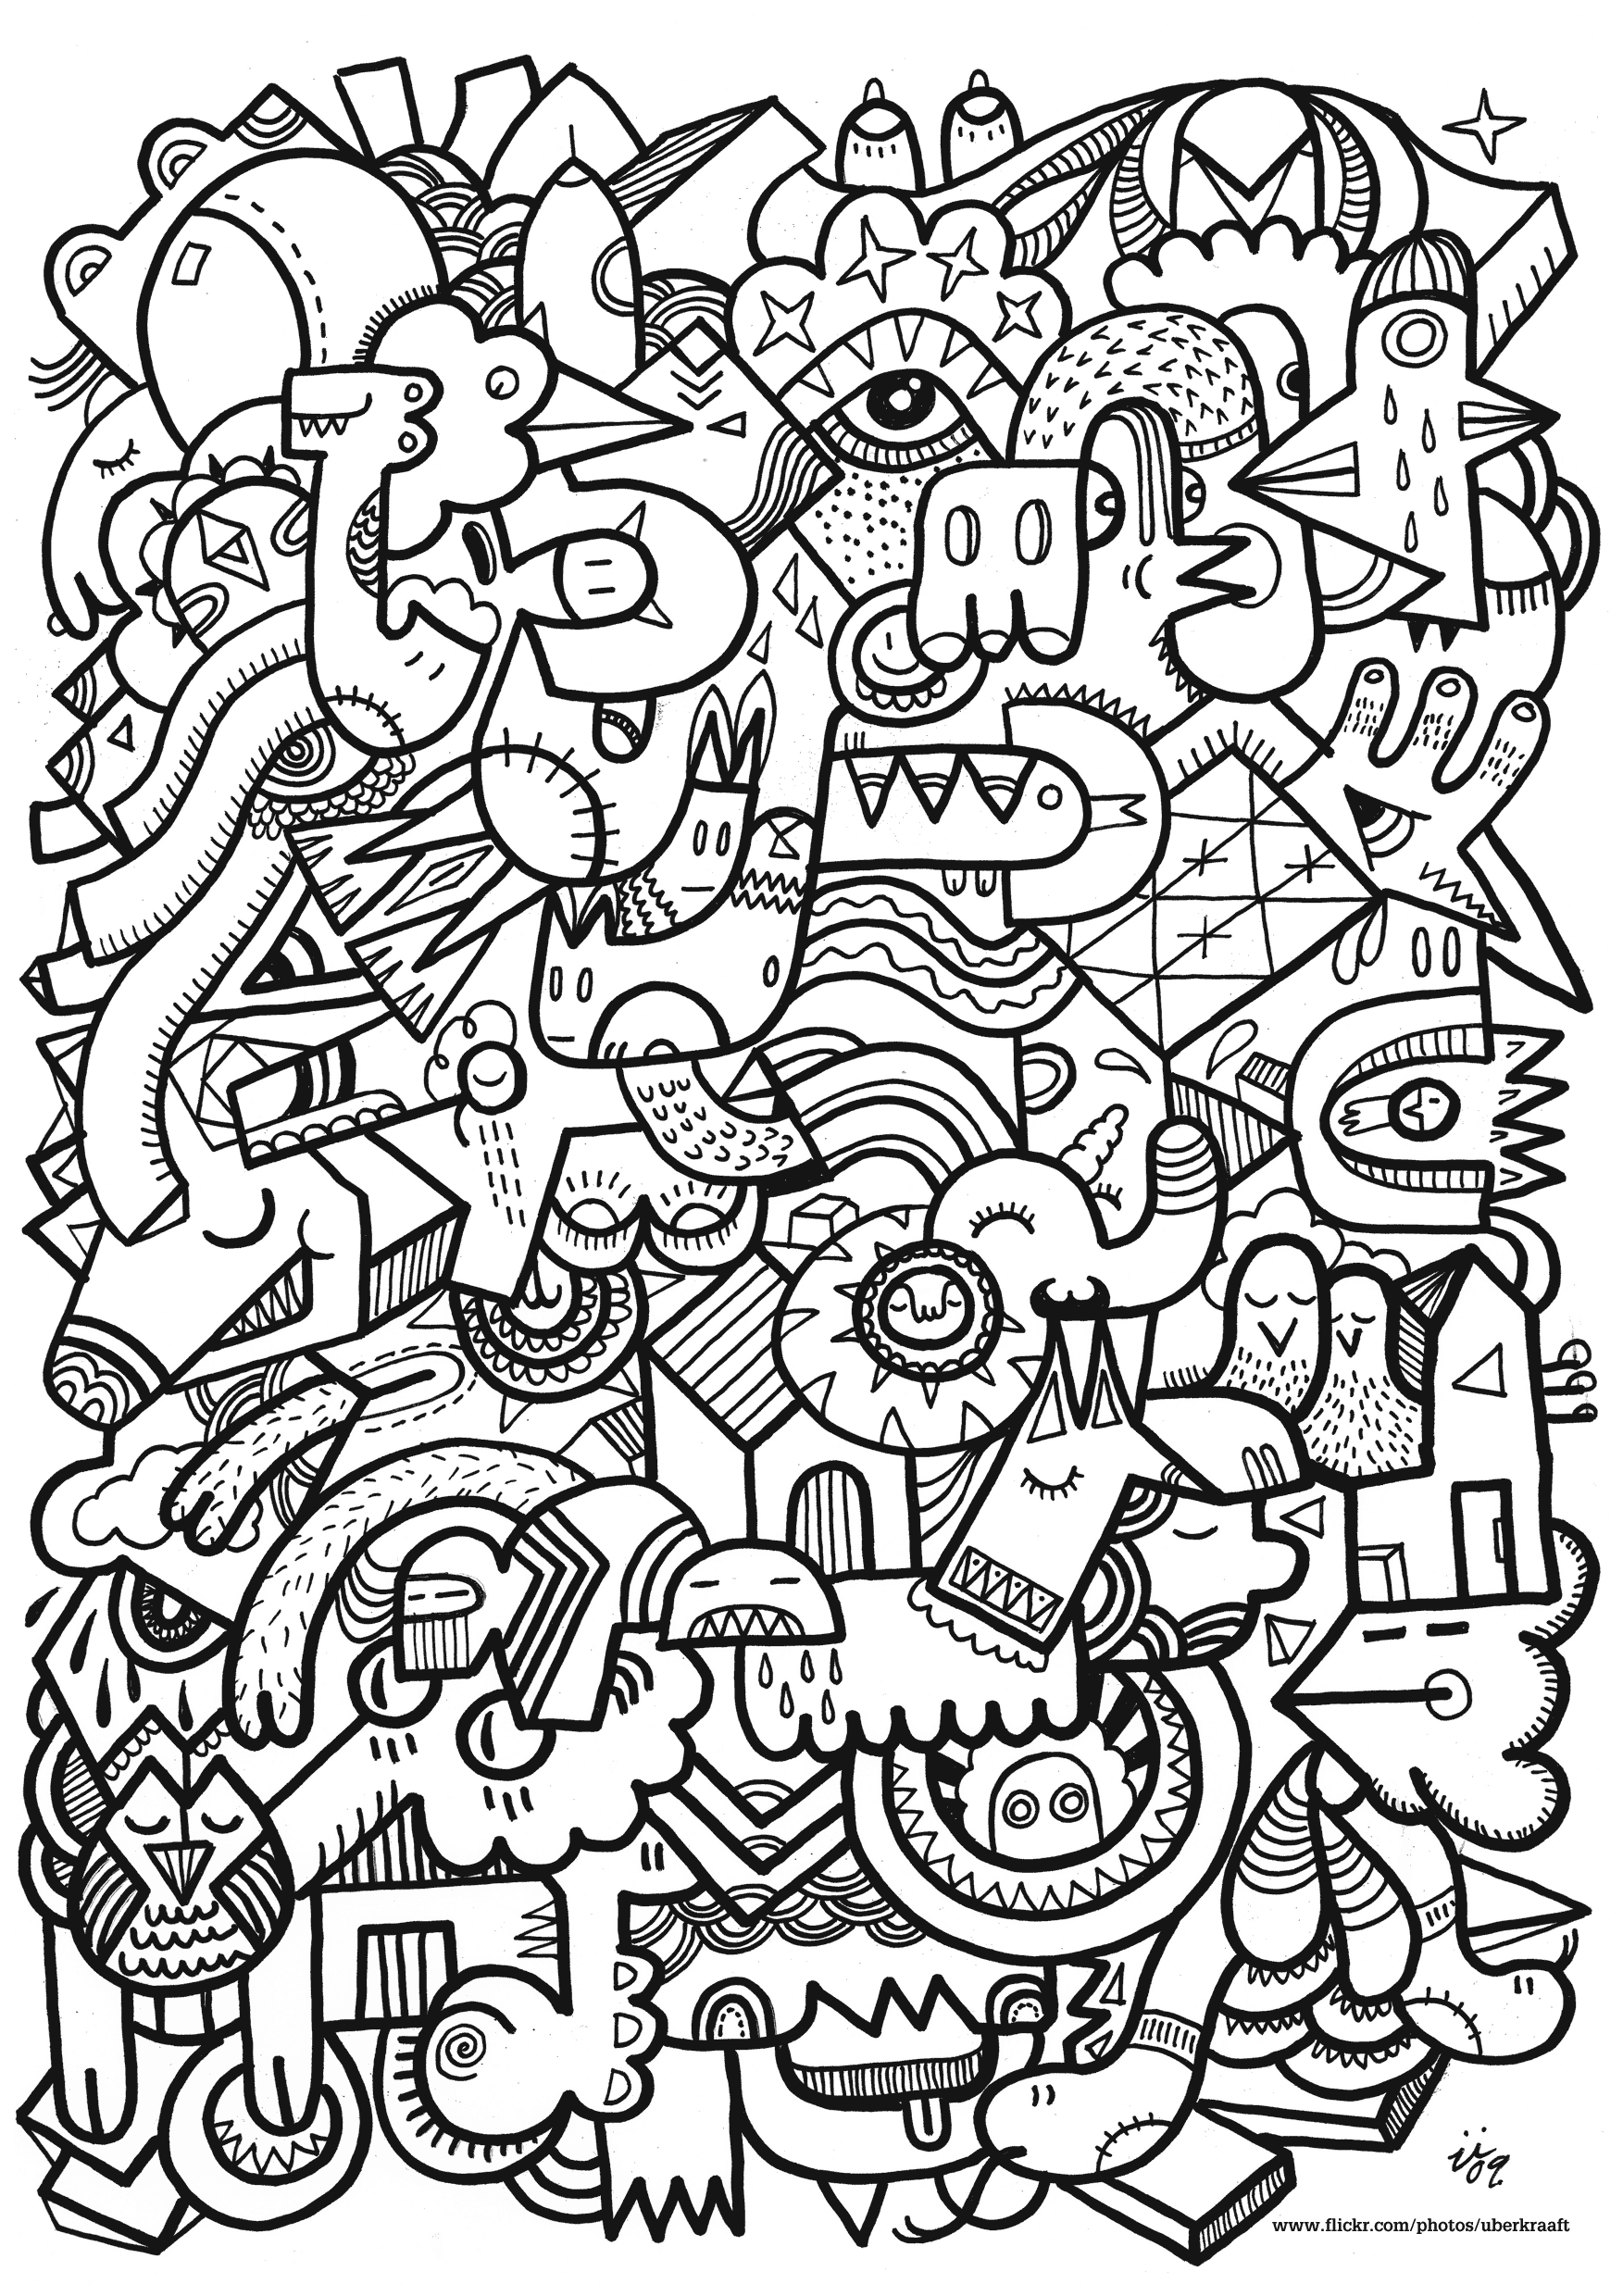 Hard mandala coloring pages for adults - Patterns Difficult Colouring Pages